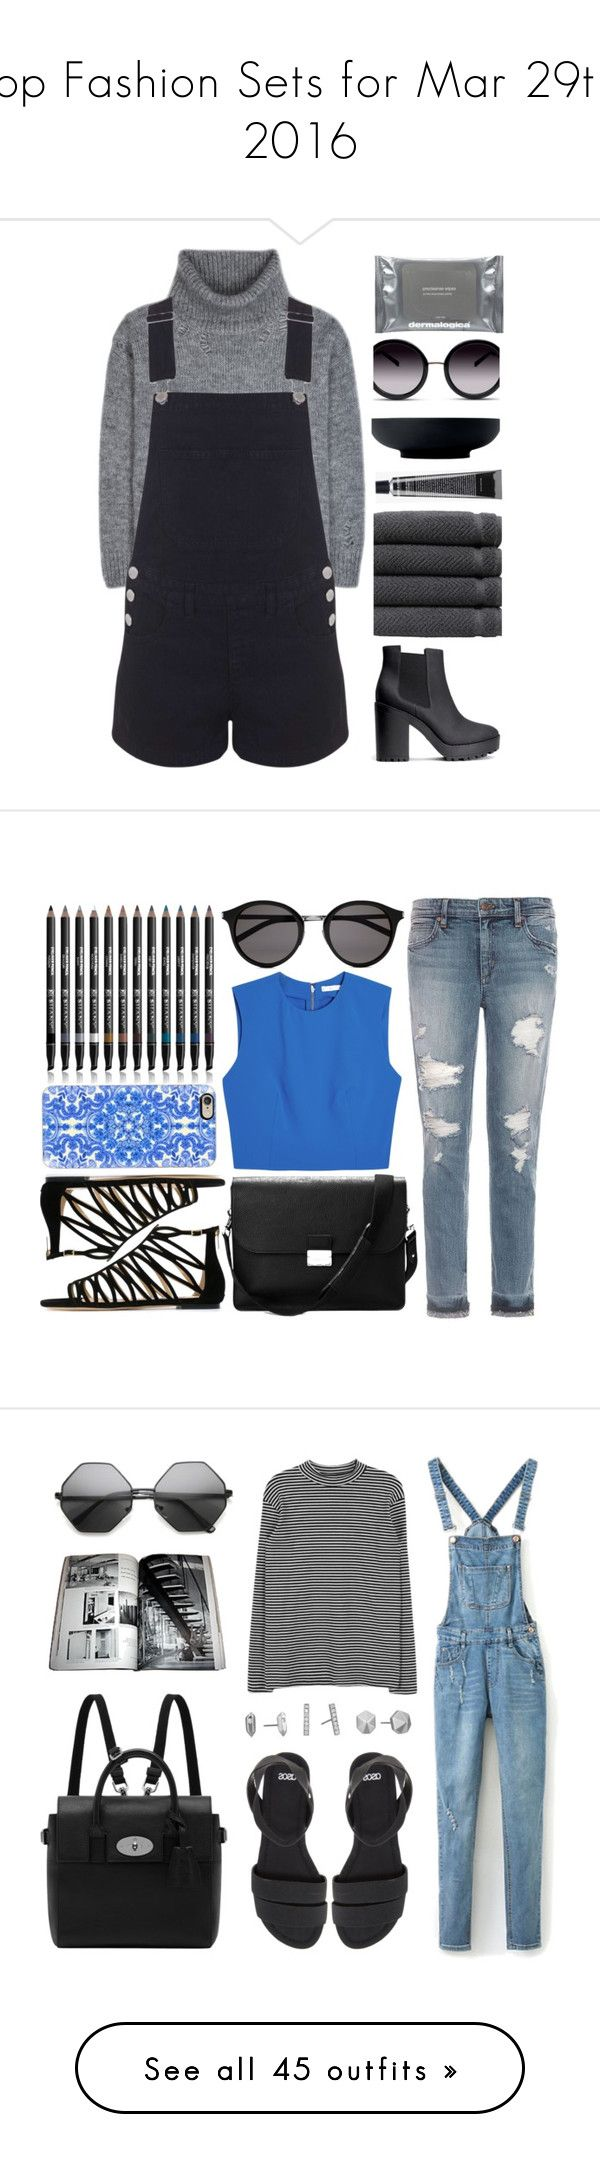 """""""Top Fashion Sets for Mar 29th, 2016"""" by polyvore ❤ liked on Polyvore featuring Yves Saint Laurent, Miss Selfridge, H&M, Linum Home Textiles, GlassesUSA, Grown Alchemist, Dermalogica, Royal Doulton, denim and polyvoreeditorial"""